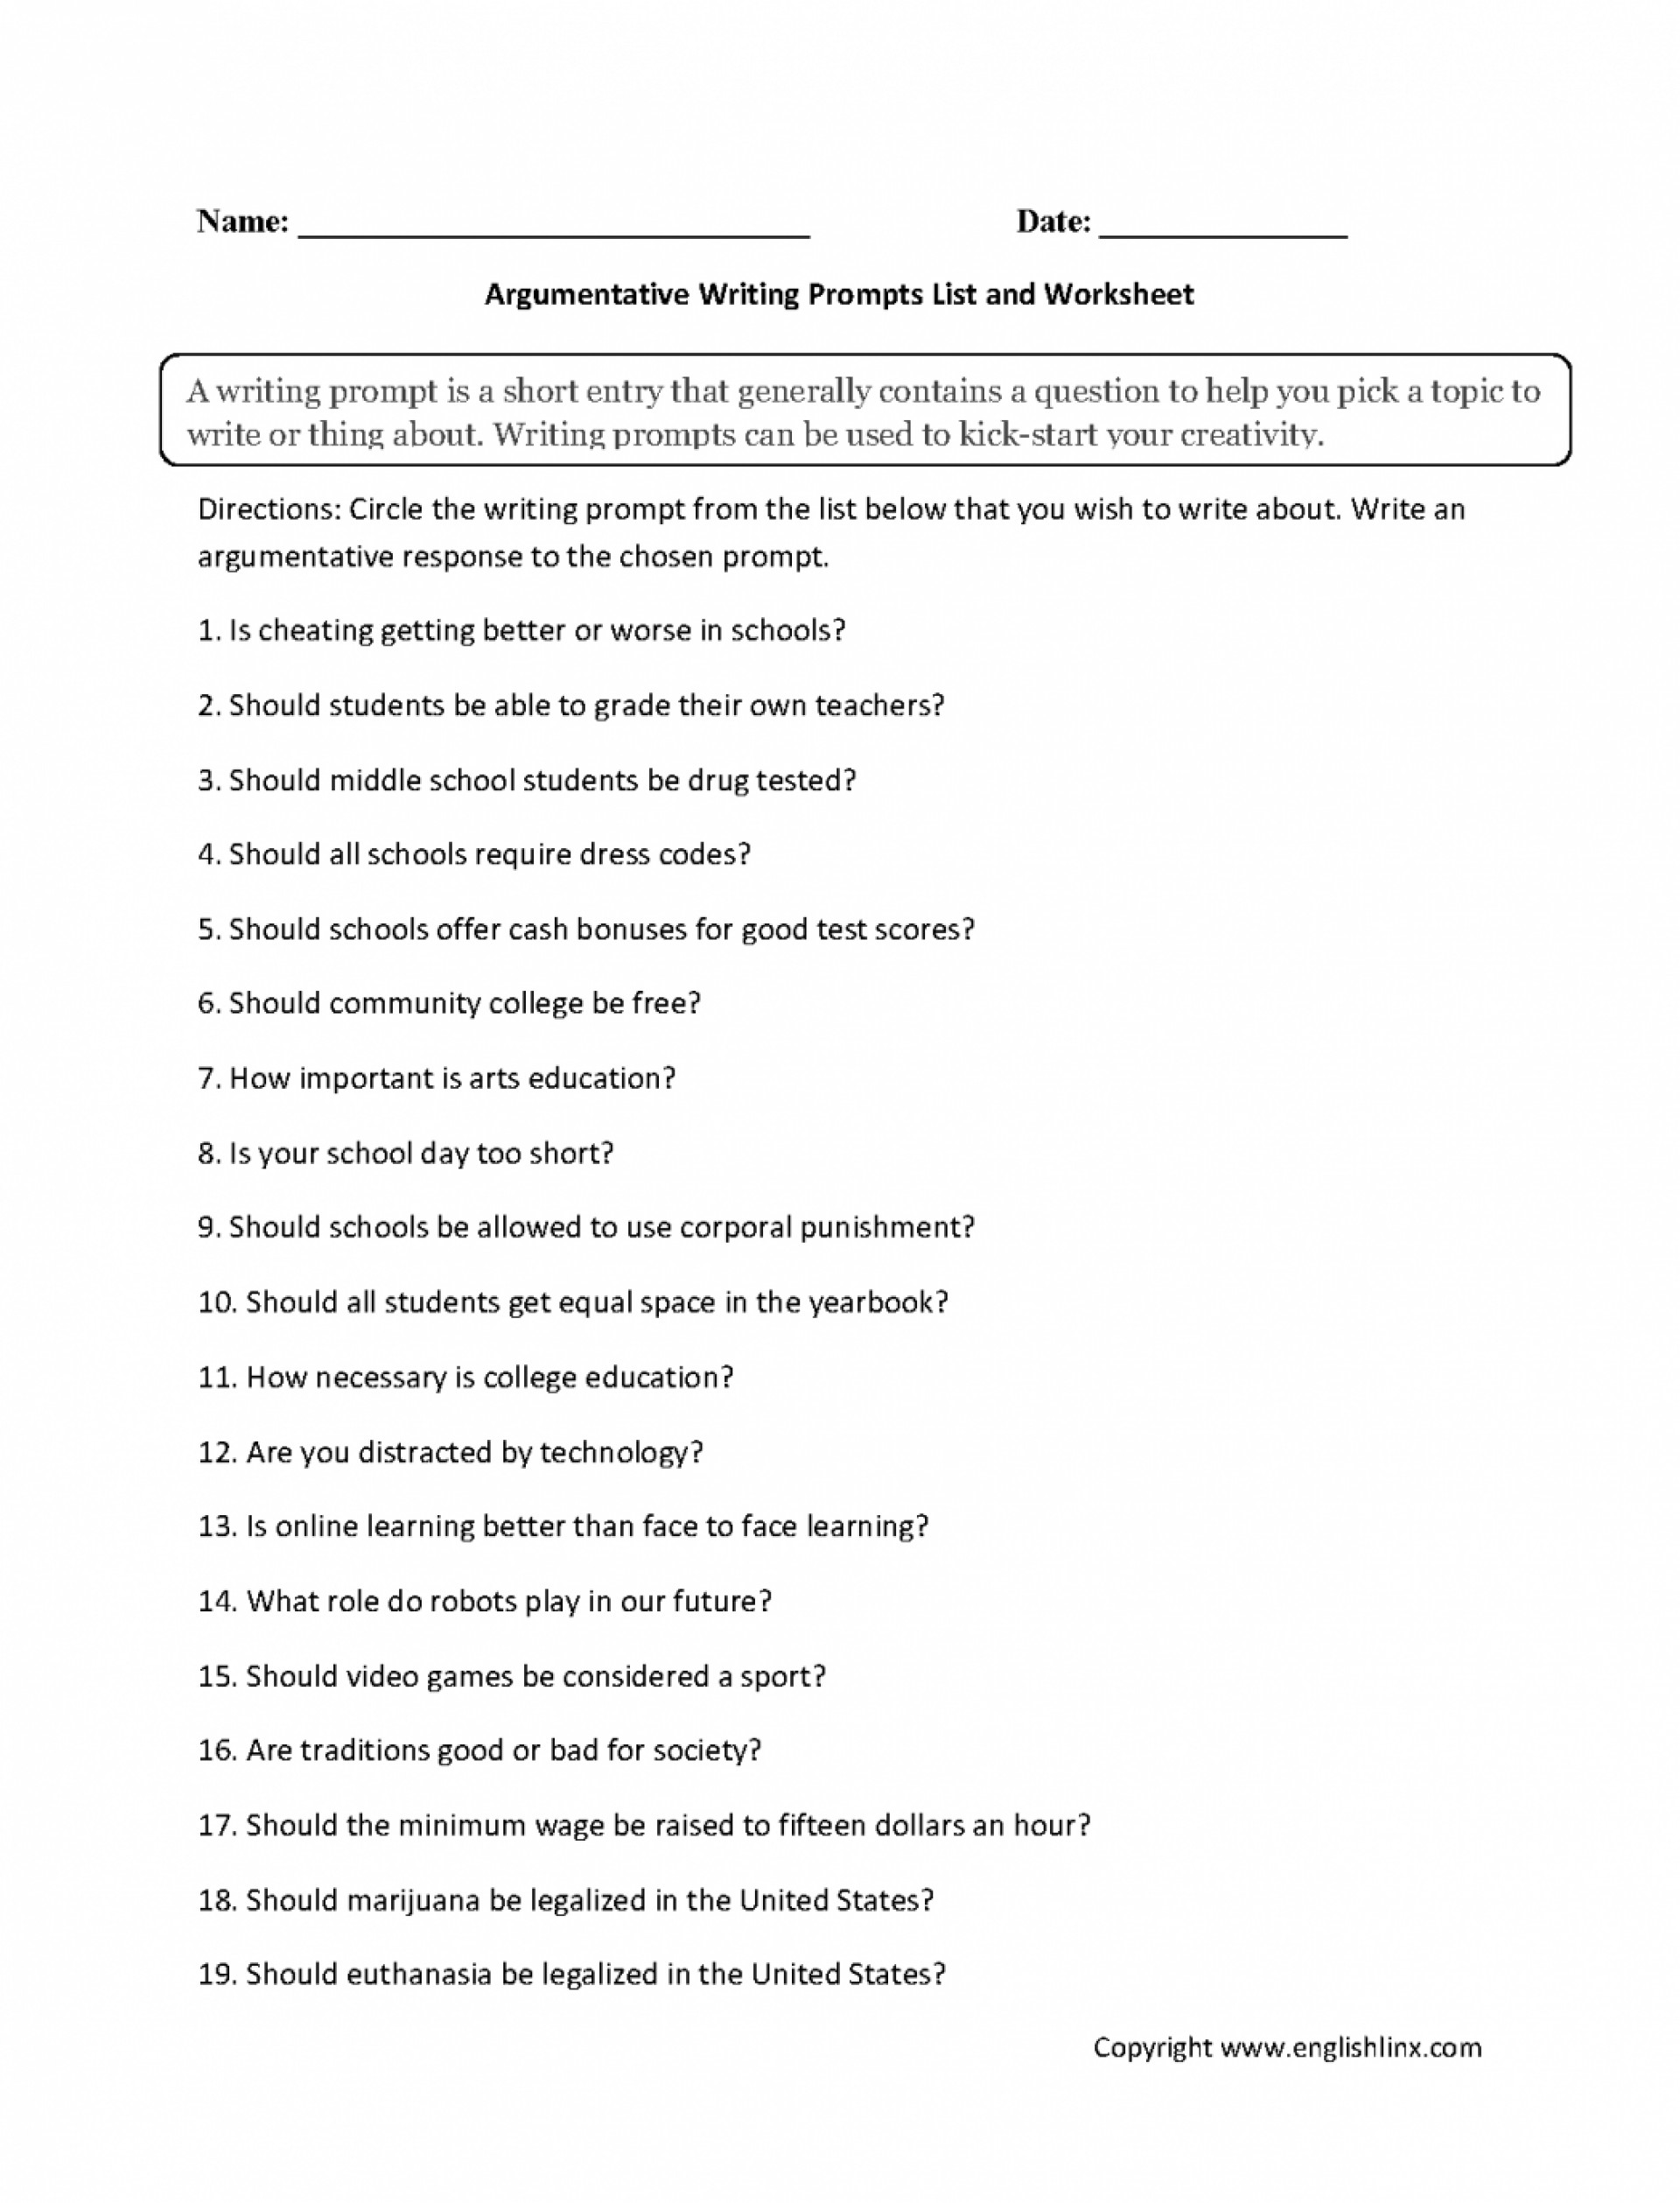 009 Argument Essay Prompts Goal Blockety Co Argumentative Topics Writing List Work For High School Subjects About Animals On Racism College Sports Middle 1048x1374 Imposing Ideas Fun Easy Examples Pdf 1920